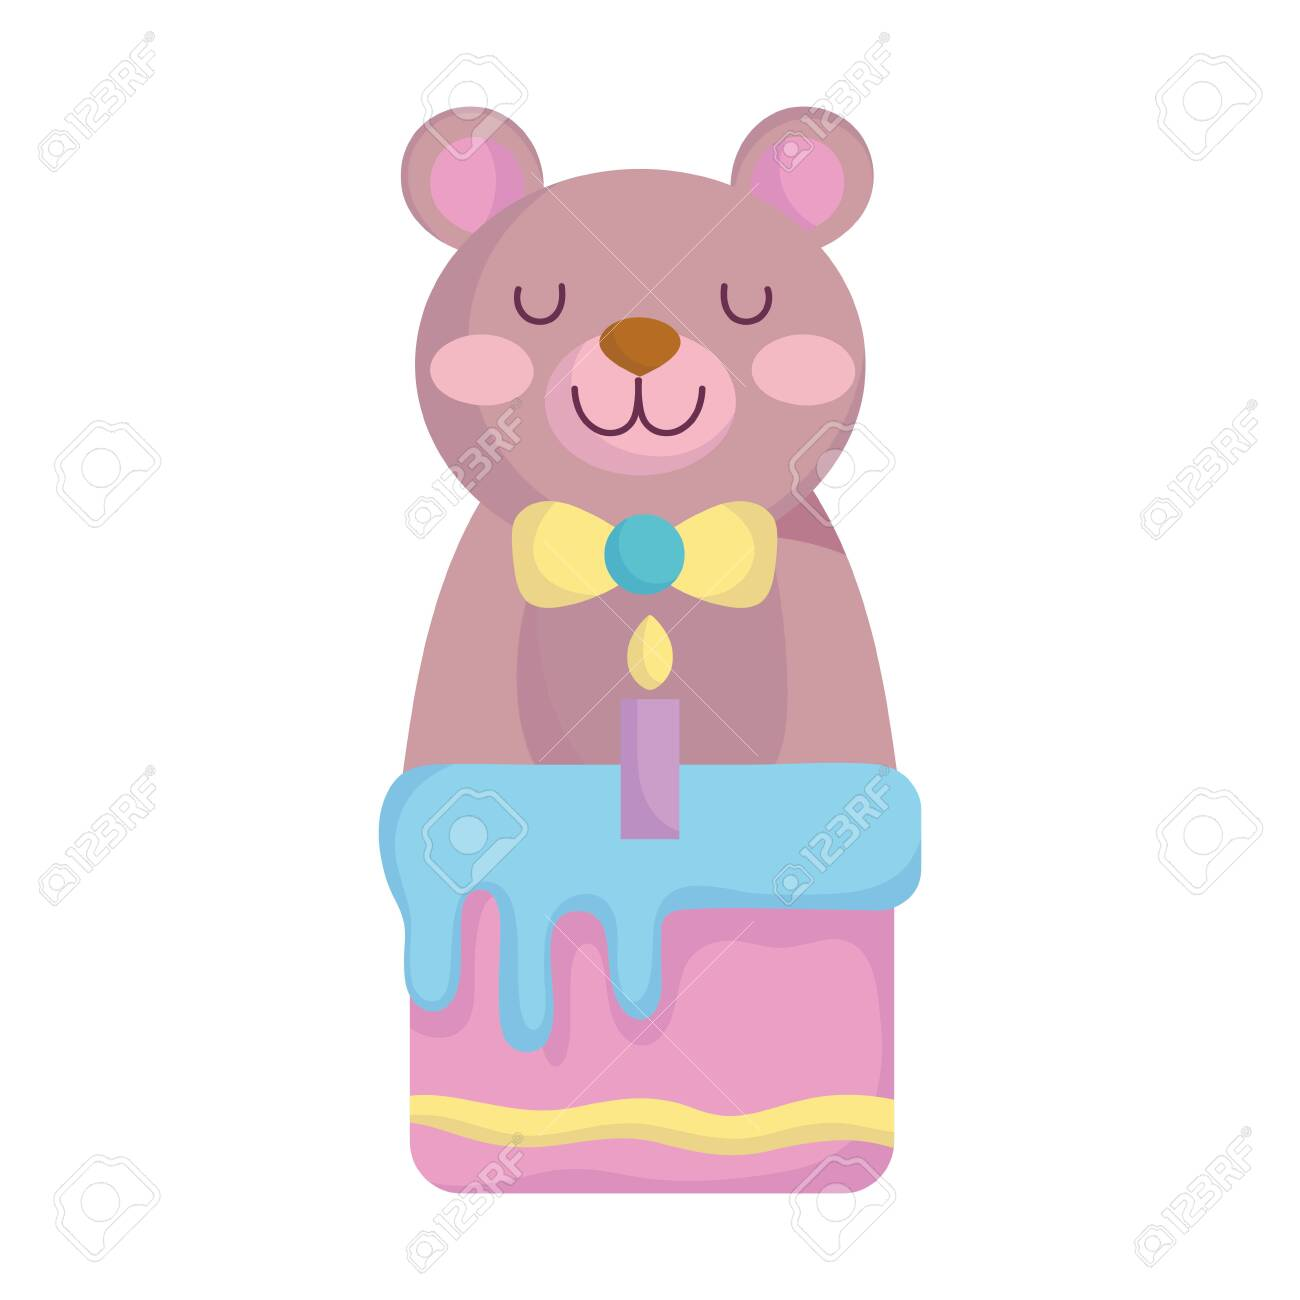 baby shower, cute bear with cake candy cartoon, announce newborn welcome card vector illustration - 148843928